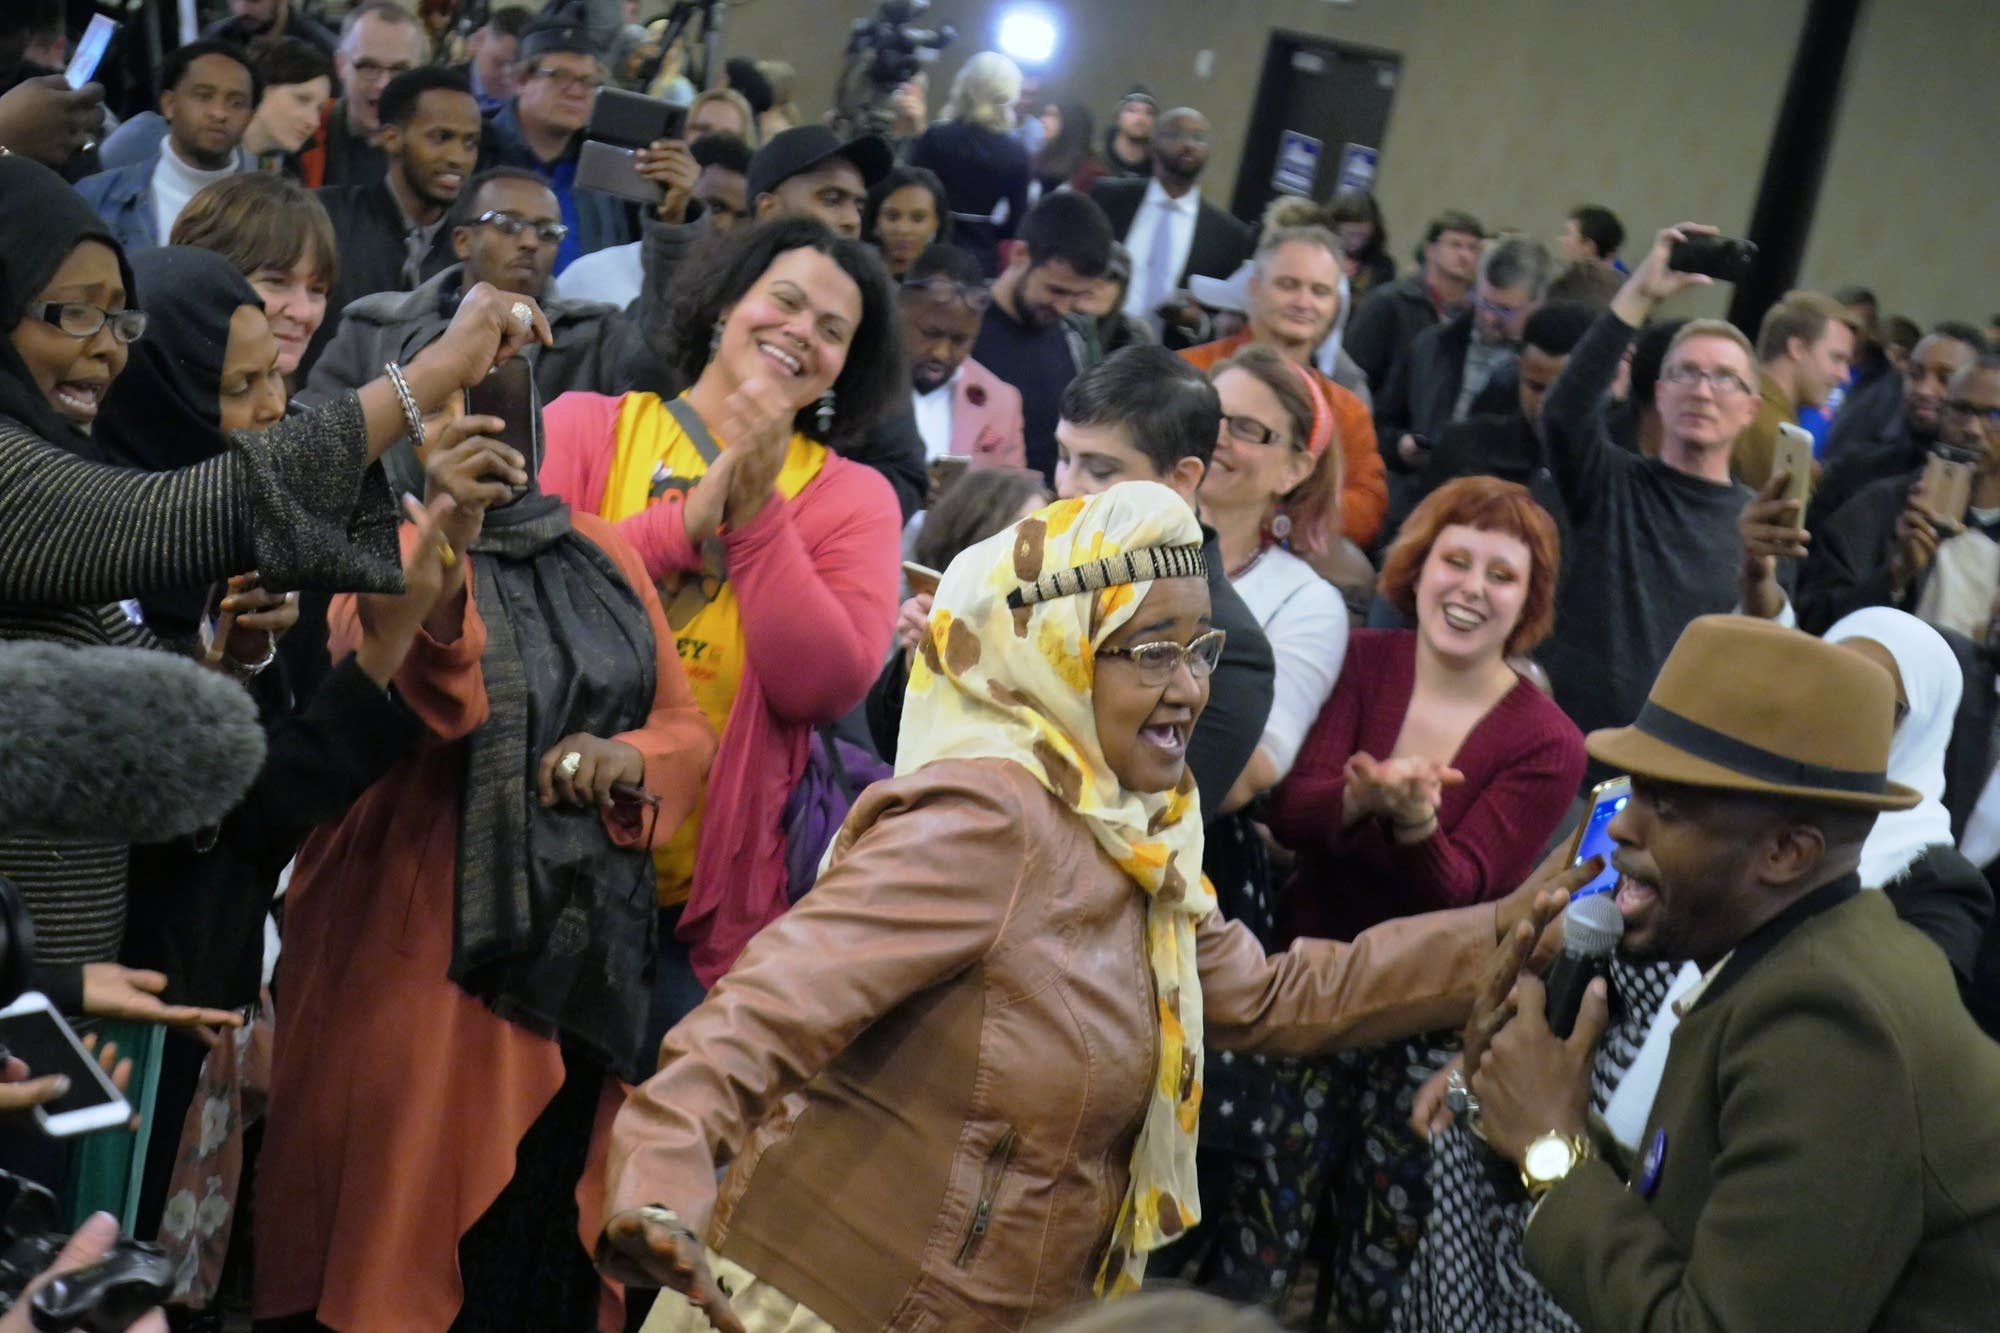 Supporters dance at Ilhan Omar's election night party.